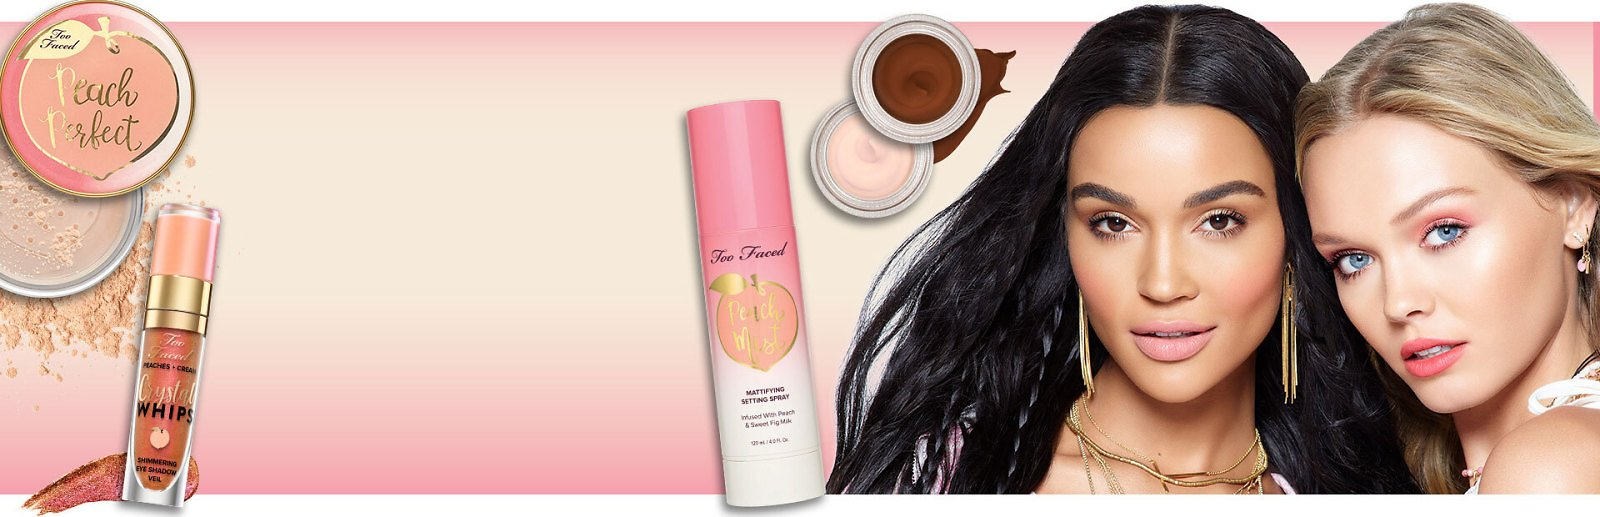 60% Off Too Faced Peaches and Cream + Ships Free